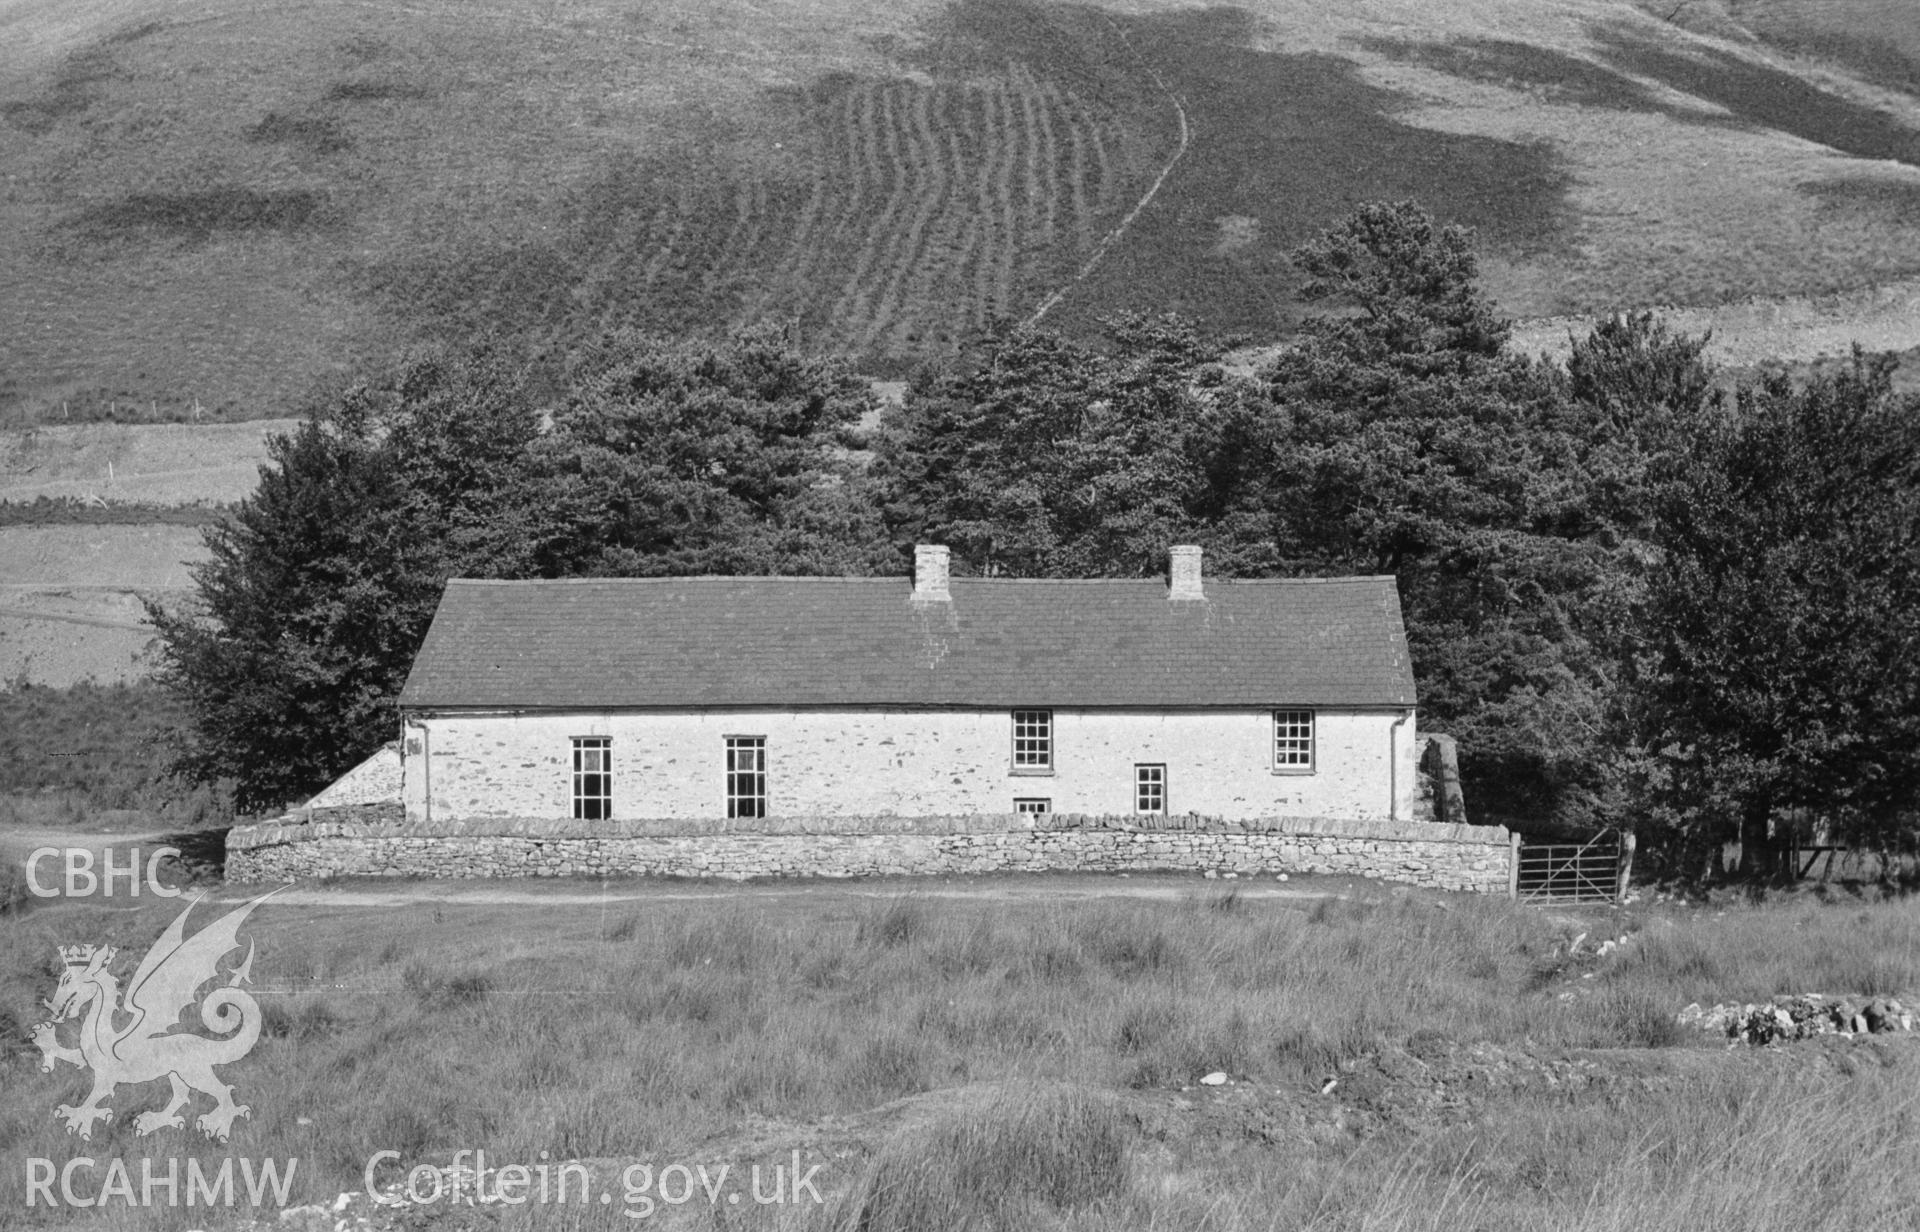 Digital copy of a black and white negative showing exterior rear elevation of Soar-y-Mynydd, Llanddewi Brefi. Photographed in September 1963 by Arthur O. Chater from Grid Reference SN 7844 5326, looking north east.